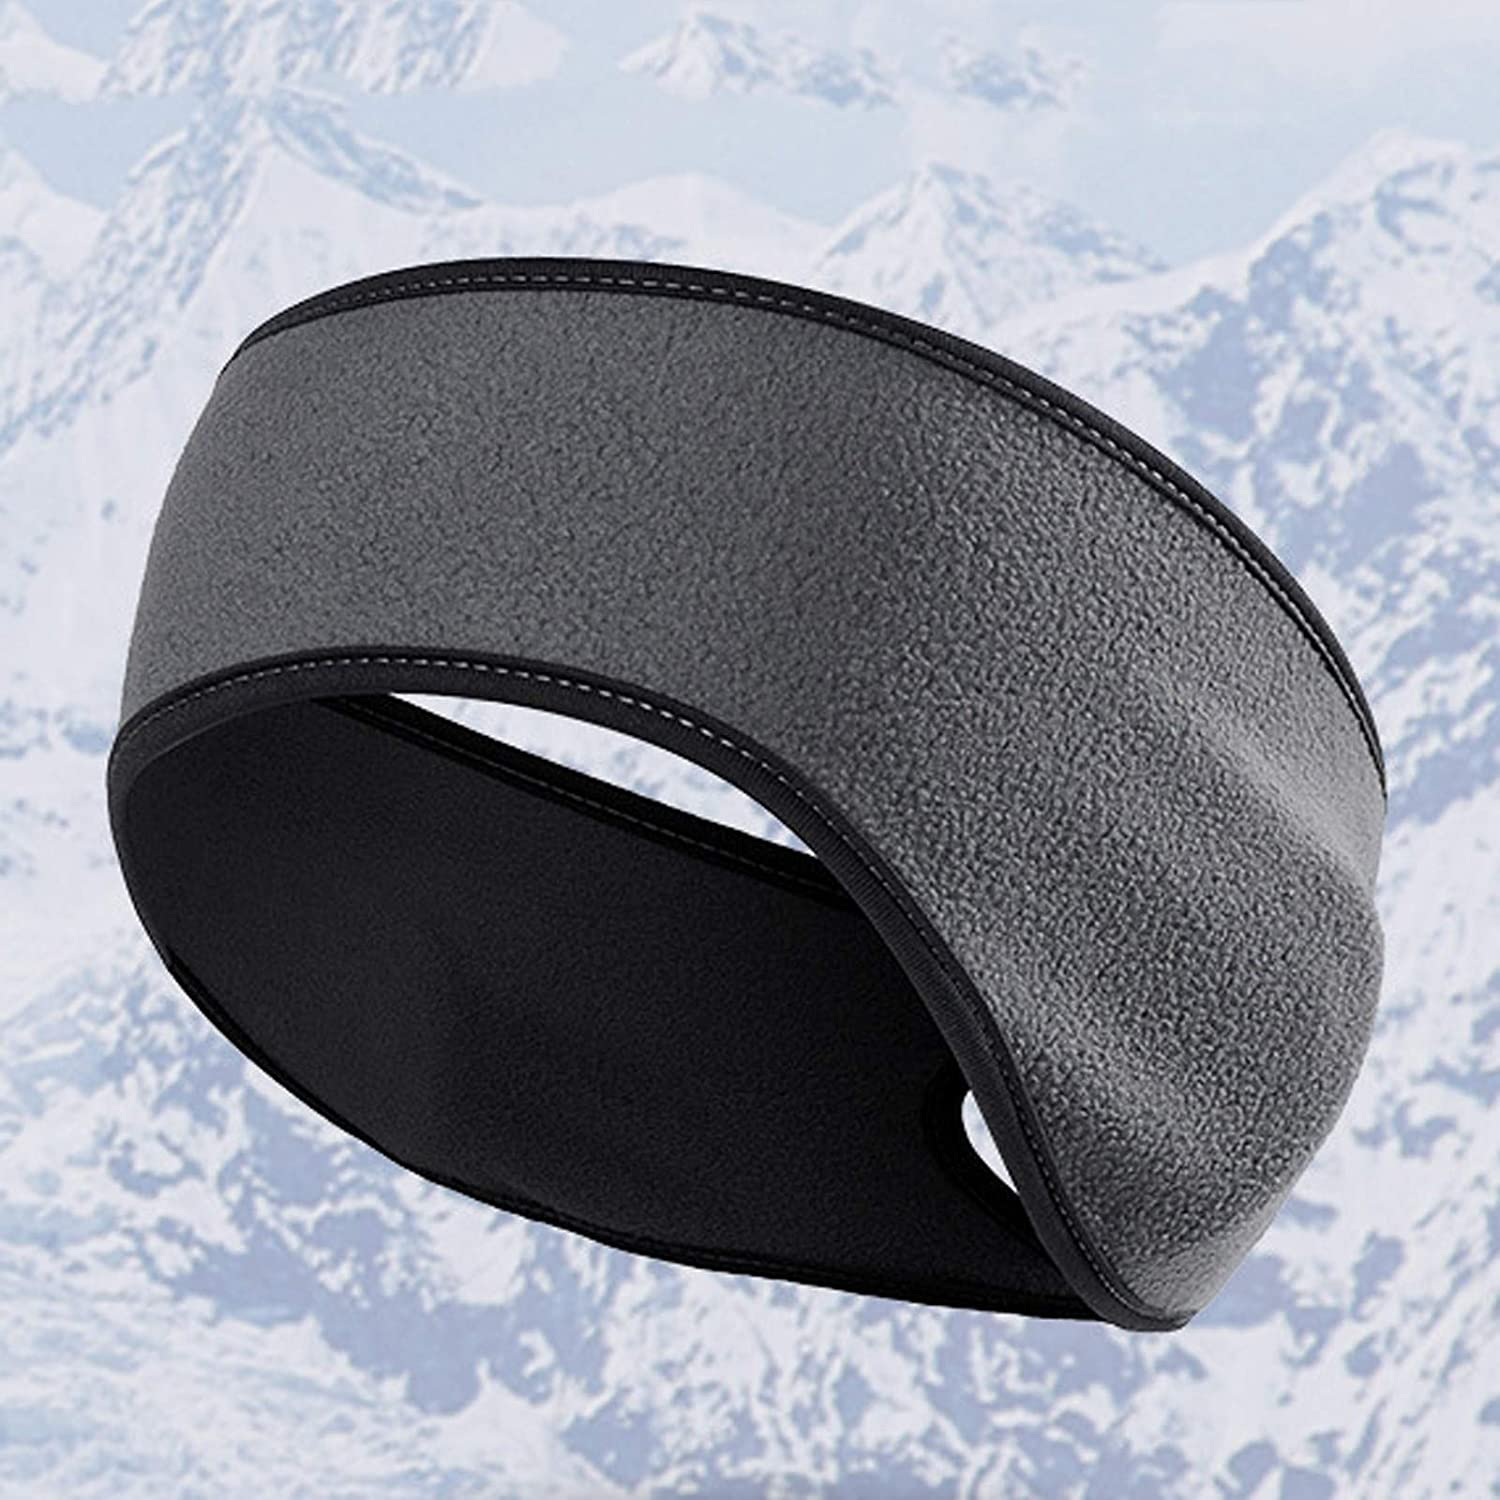 Fleece Ear Warmers for Women Winter Earmuffs Ponytail Headband for Cold Thermal Workout Running Cycling